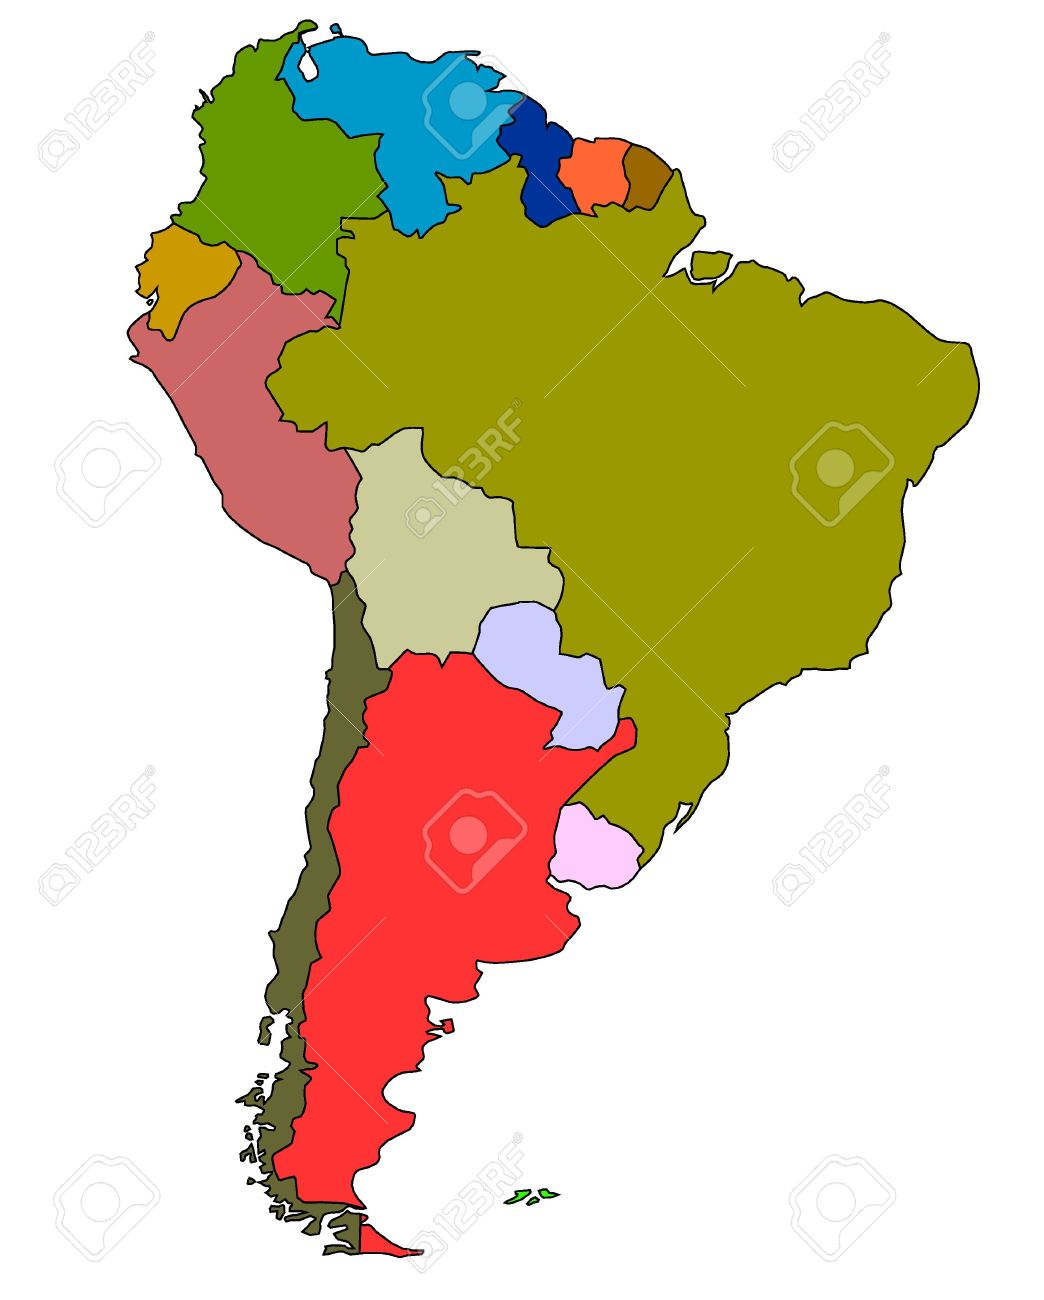 Color Map Of South America Stock Photo, Picture And Royalty Free ...